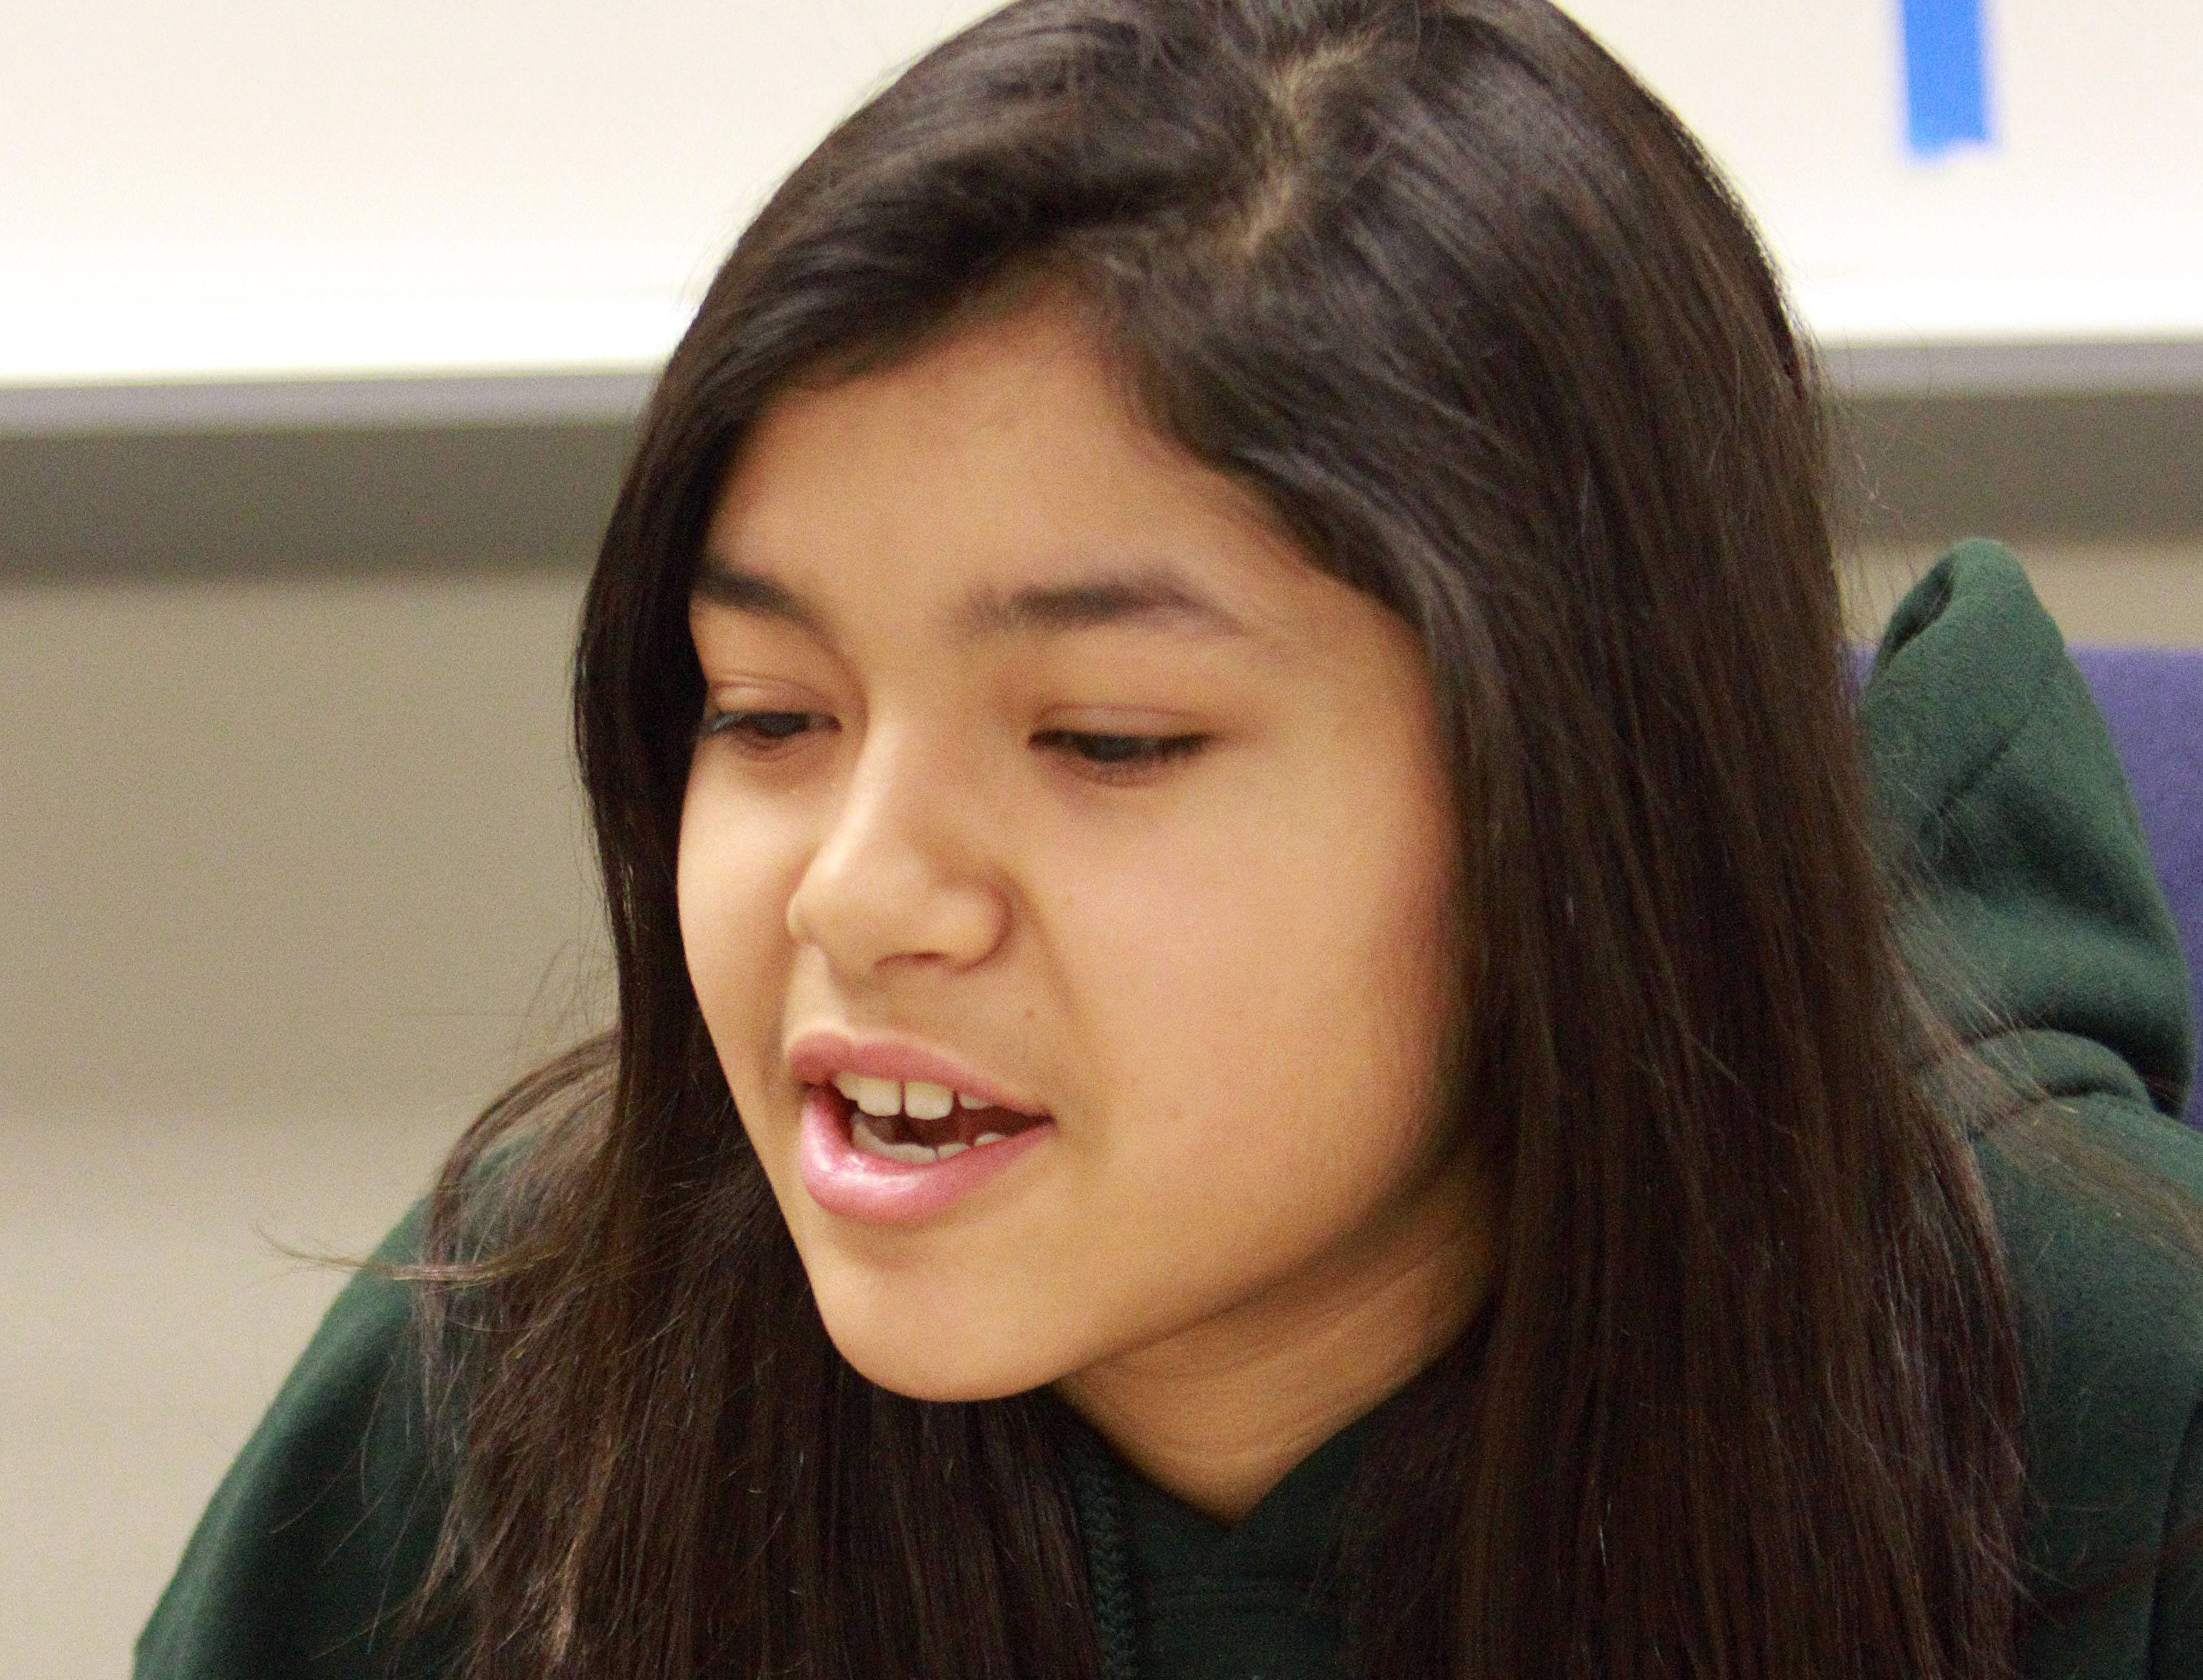 Round Lake Middle School eighth grader Allie Ramirez talks about her involvement in the Second Saturday program. Allie serves as a mentor to younger at-risk children through the program.